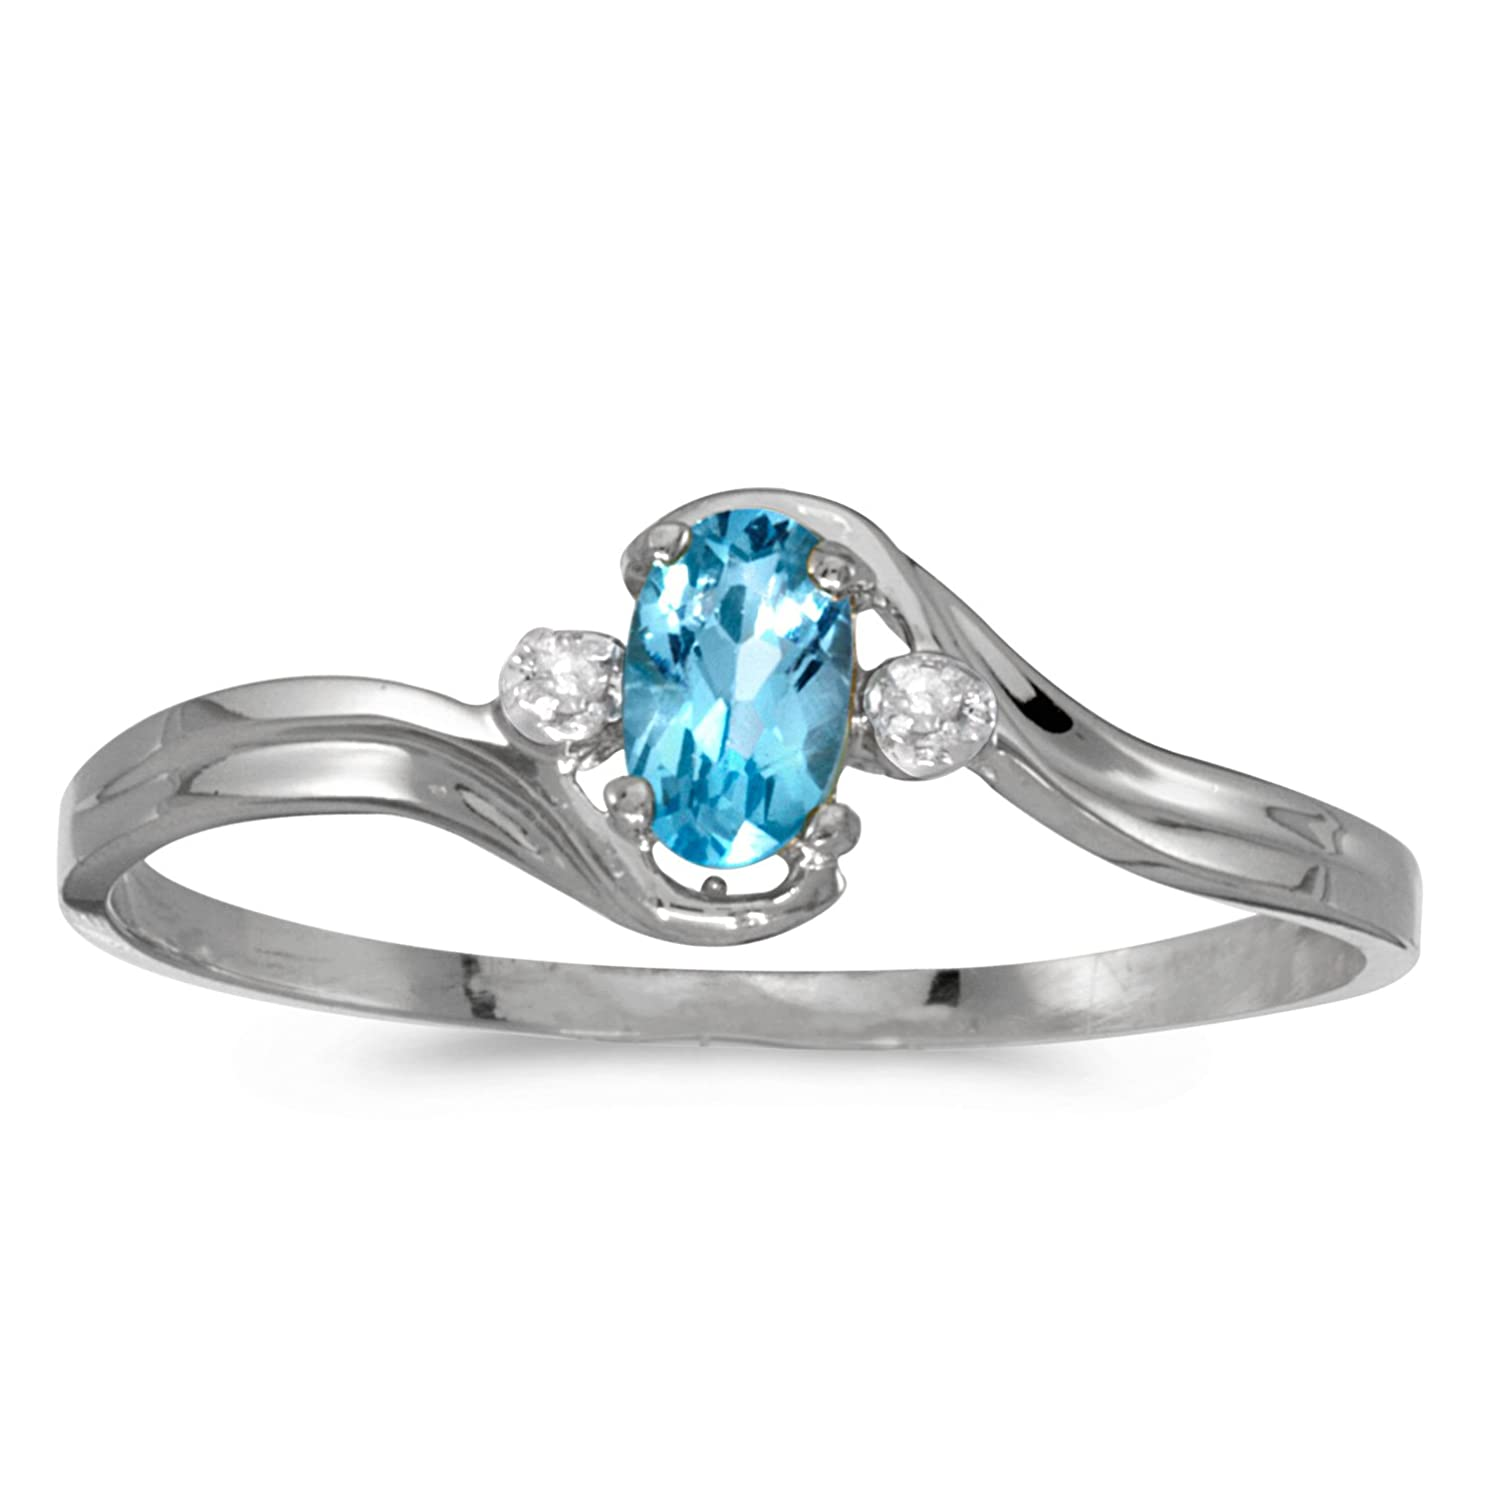 ring pricole turquoise wedding rings starlight silver shop december birthstone